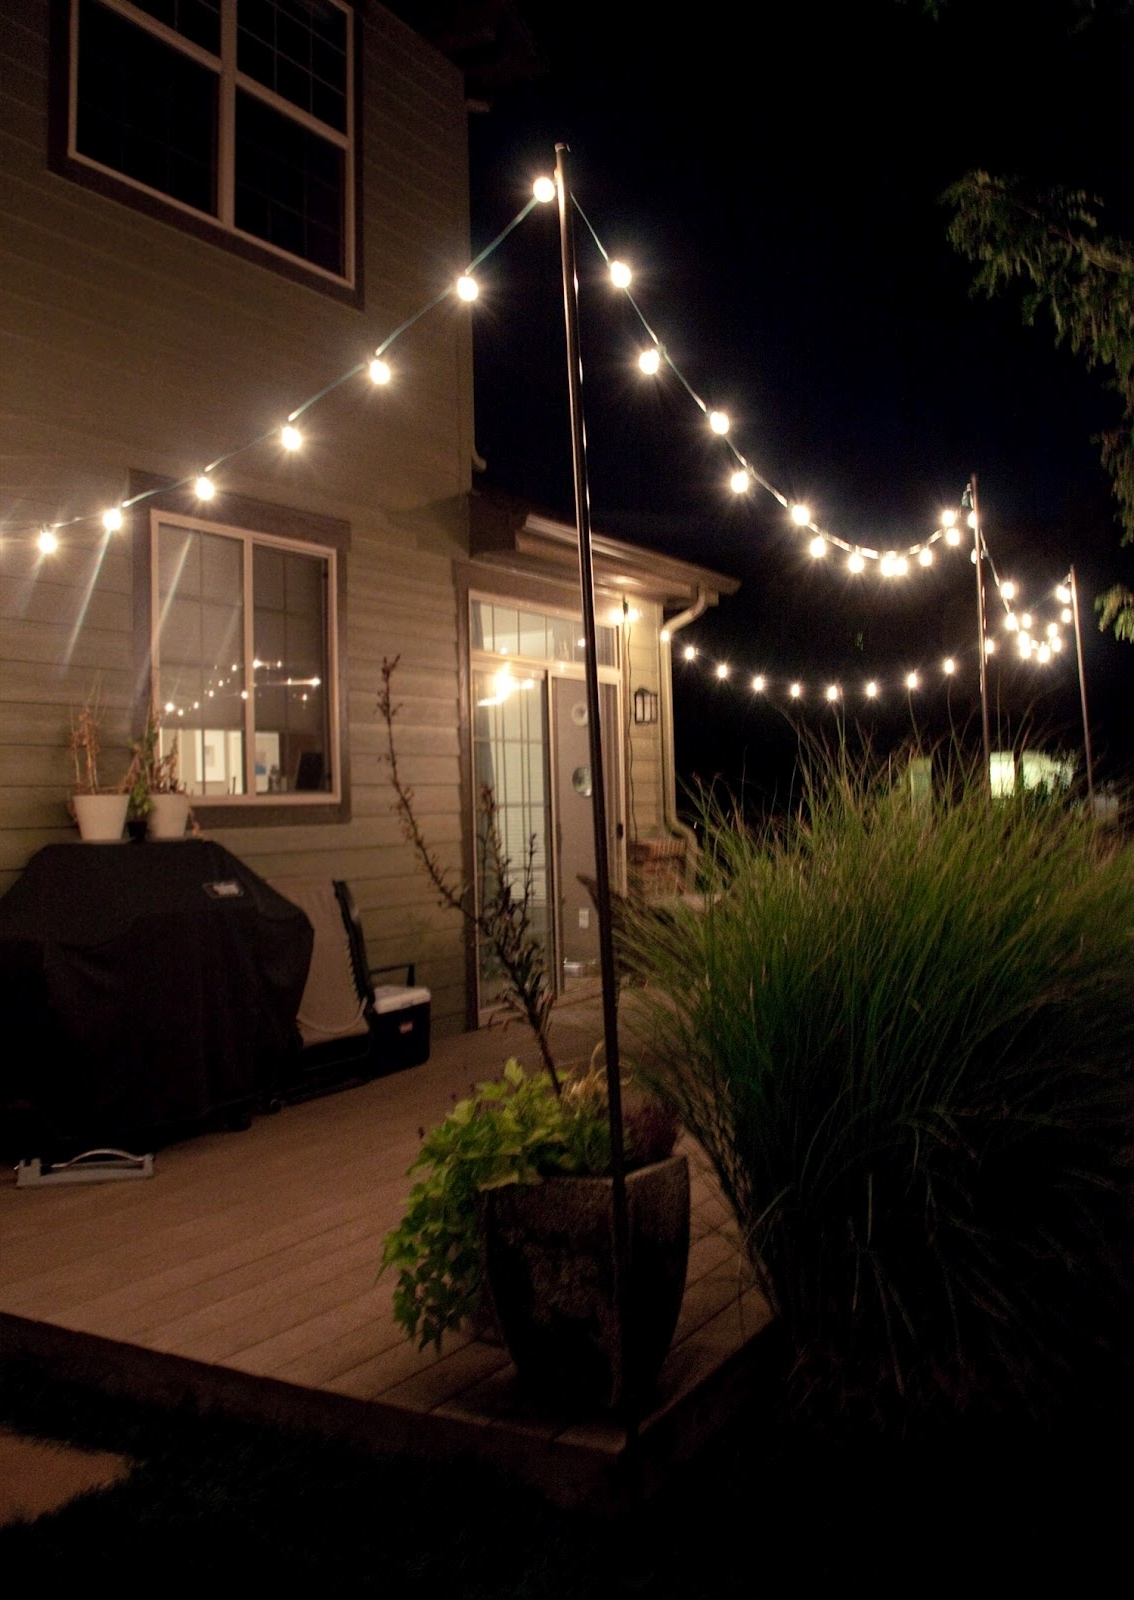 Hanging Outdoor Lights In Backyard With Well Liked Diy String Light Poles In Under One Hour For Less Than $ (View 9 of 20)